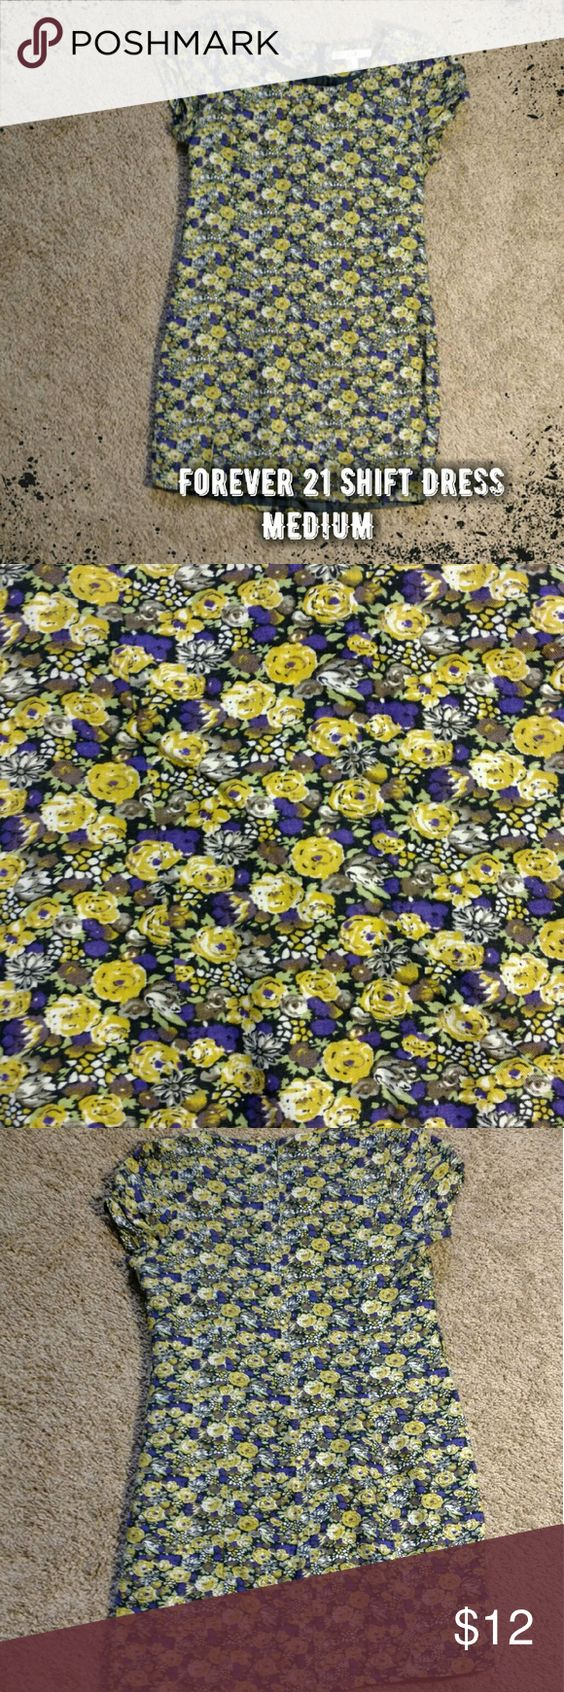 {Forever 21} Shift Dress - Forever 21 shift dress - purple, yellow, green and taupe floral pattern - short sleeves - lined - hidden back zip and hook and eye closure - bust: 17 inches - waist: 16 inches - length: 31 inches  Final price unless bundled.  No trades. No modeling. No PayPal.  100% rayon Forever 21 Dresses